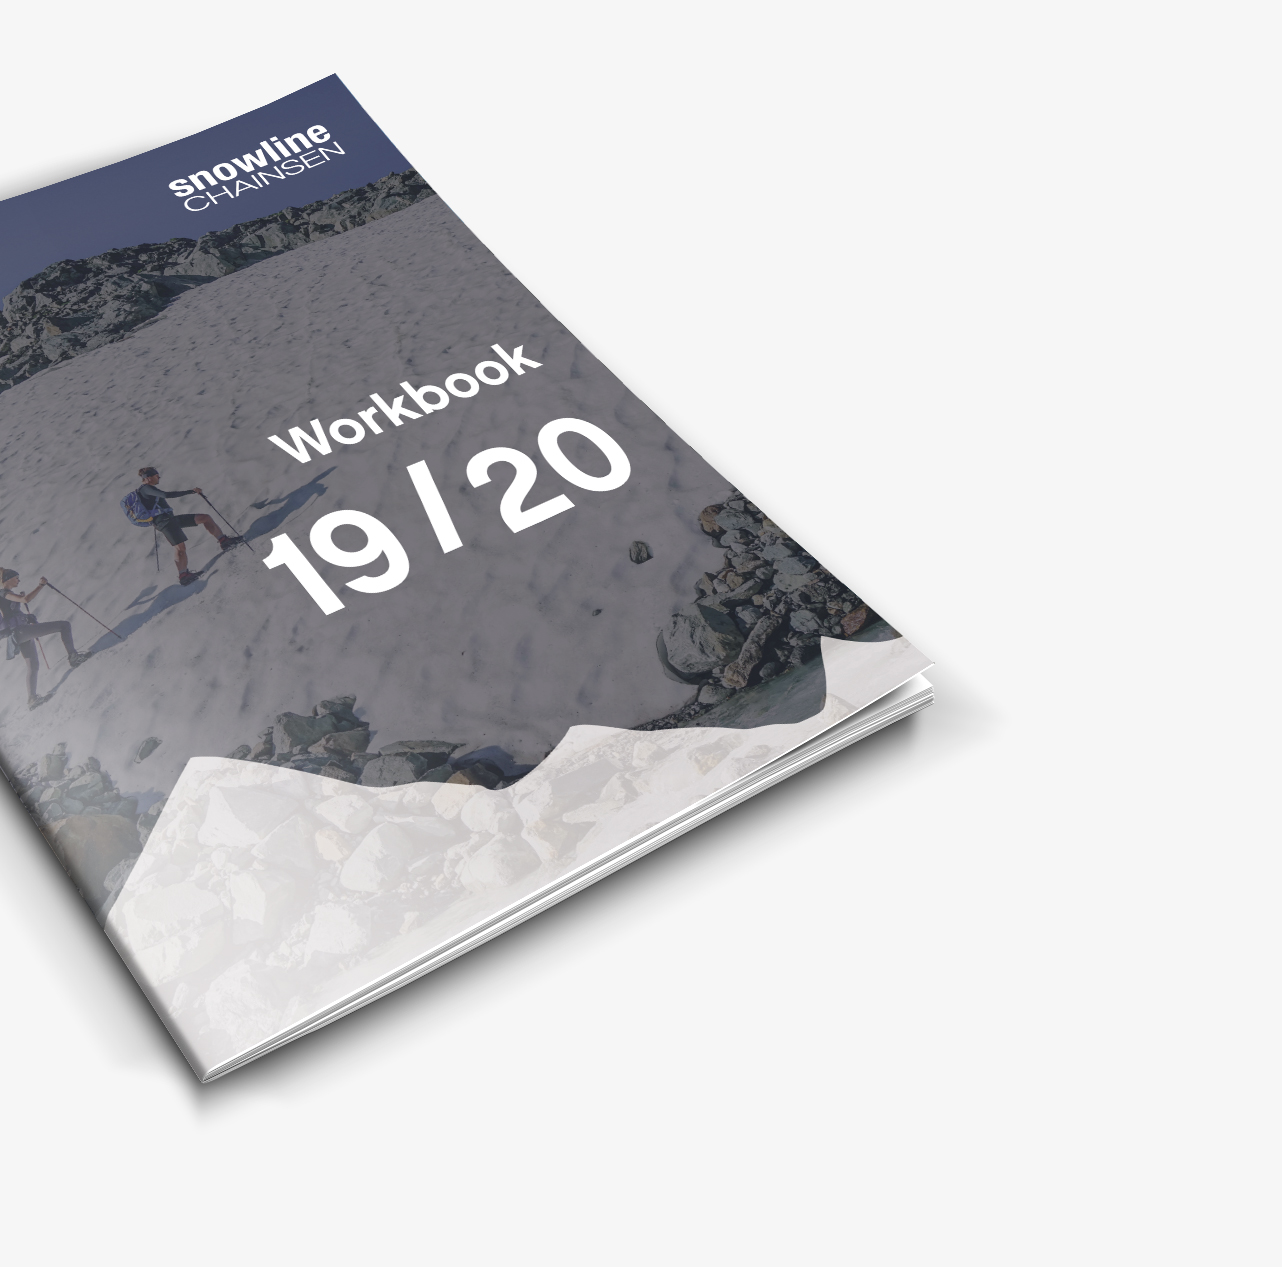 19|20 Workbook snowline